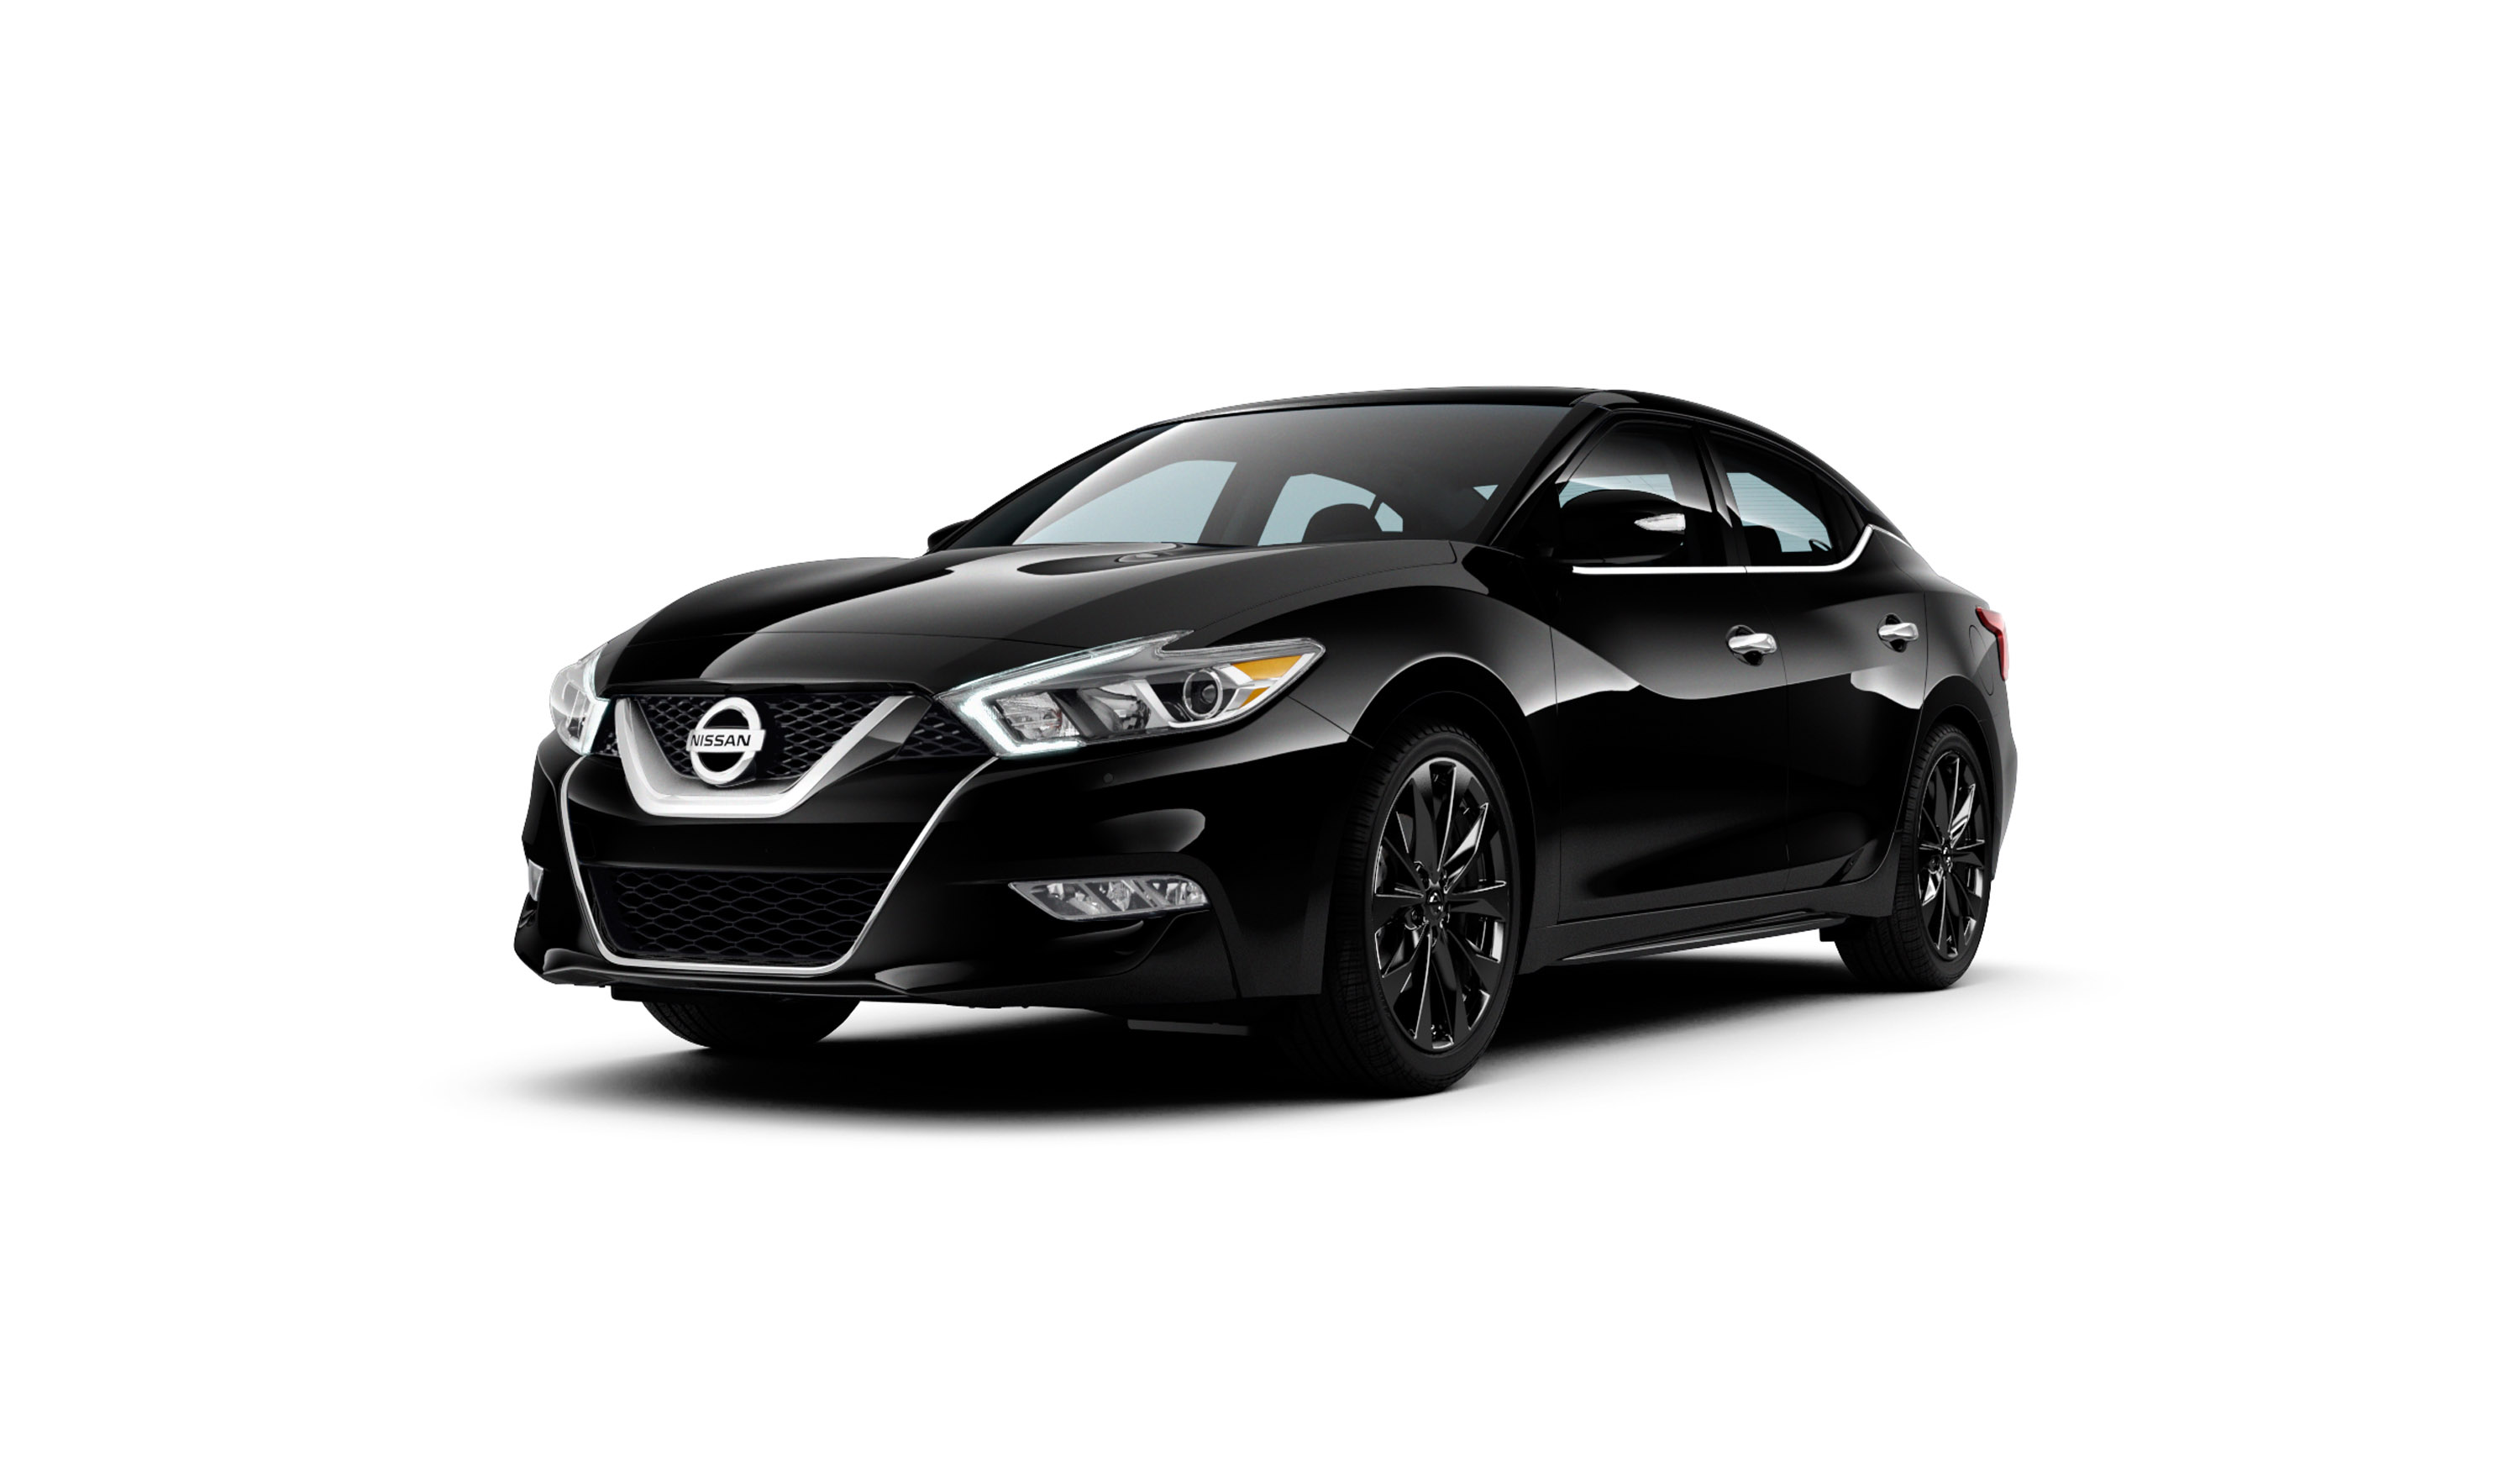 nissan releases midnight edition package for 2016 maxima. Black Bedroom Furniture Sets. Home Design Ideas